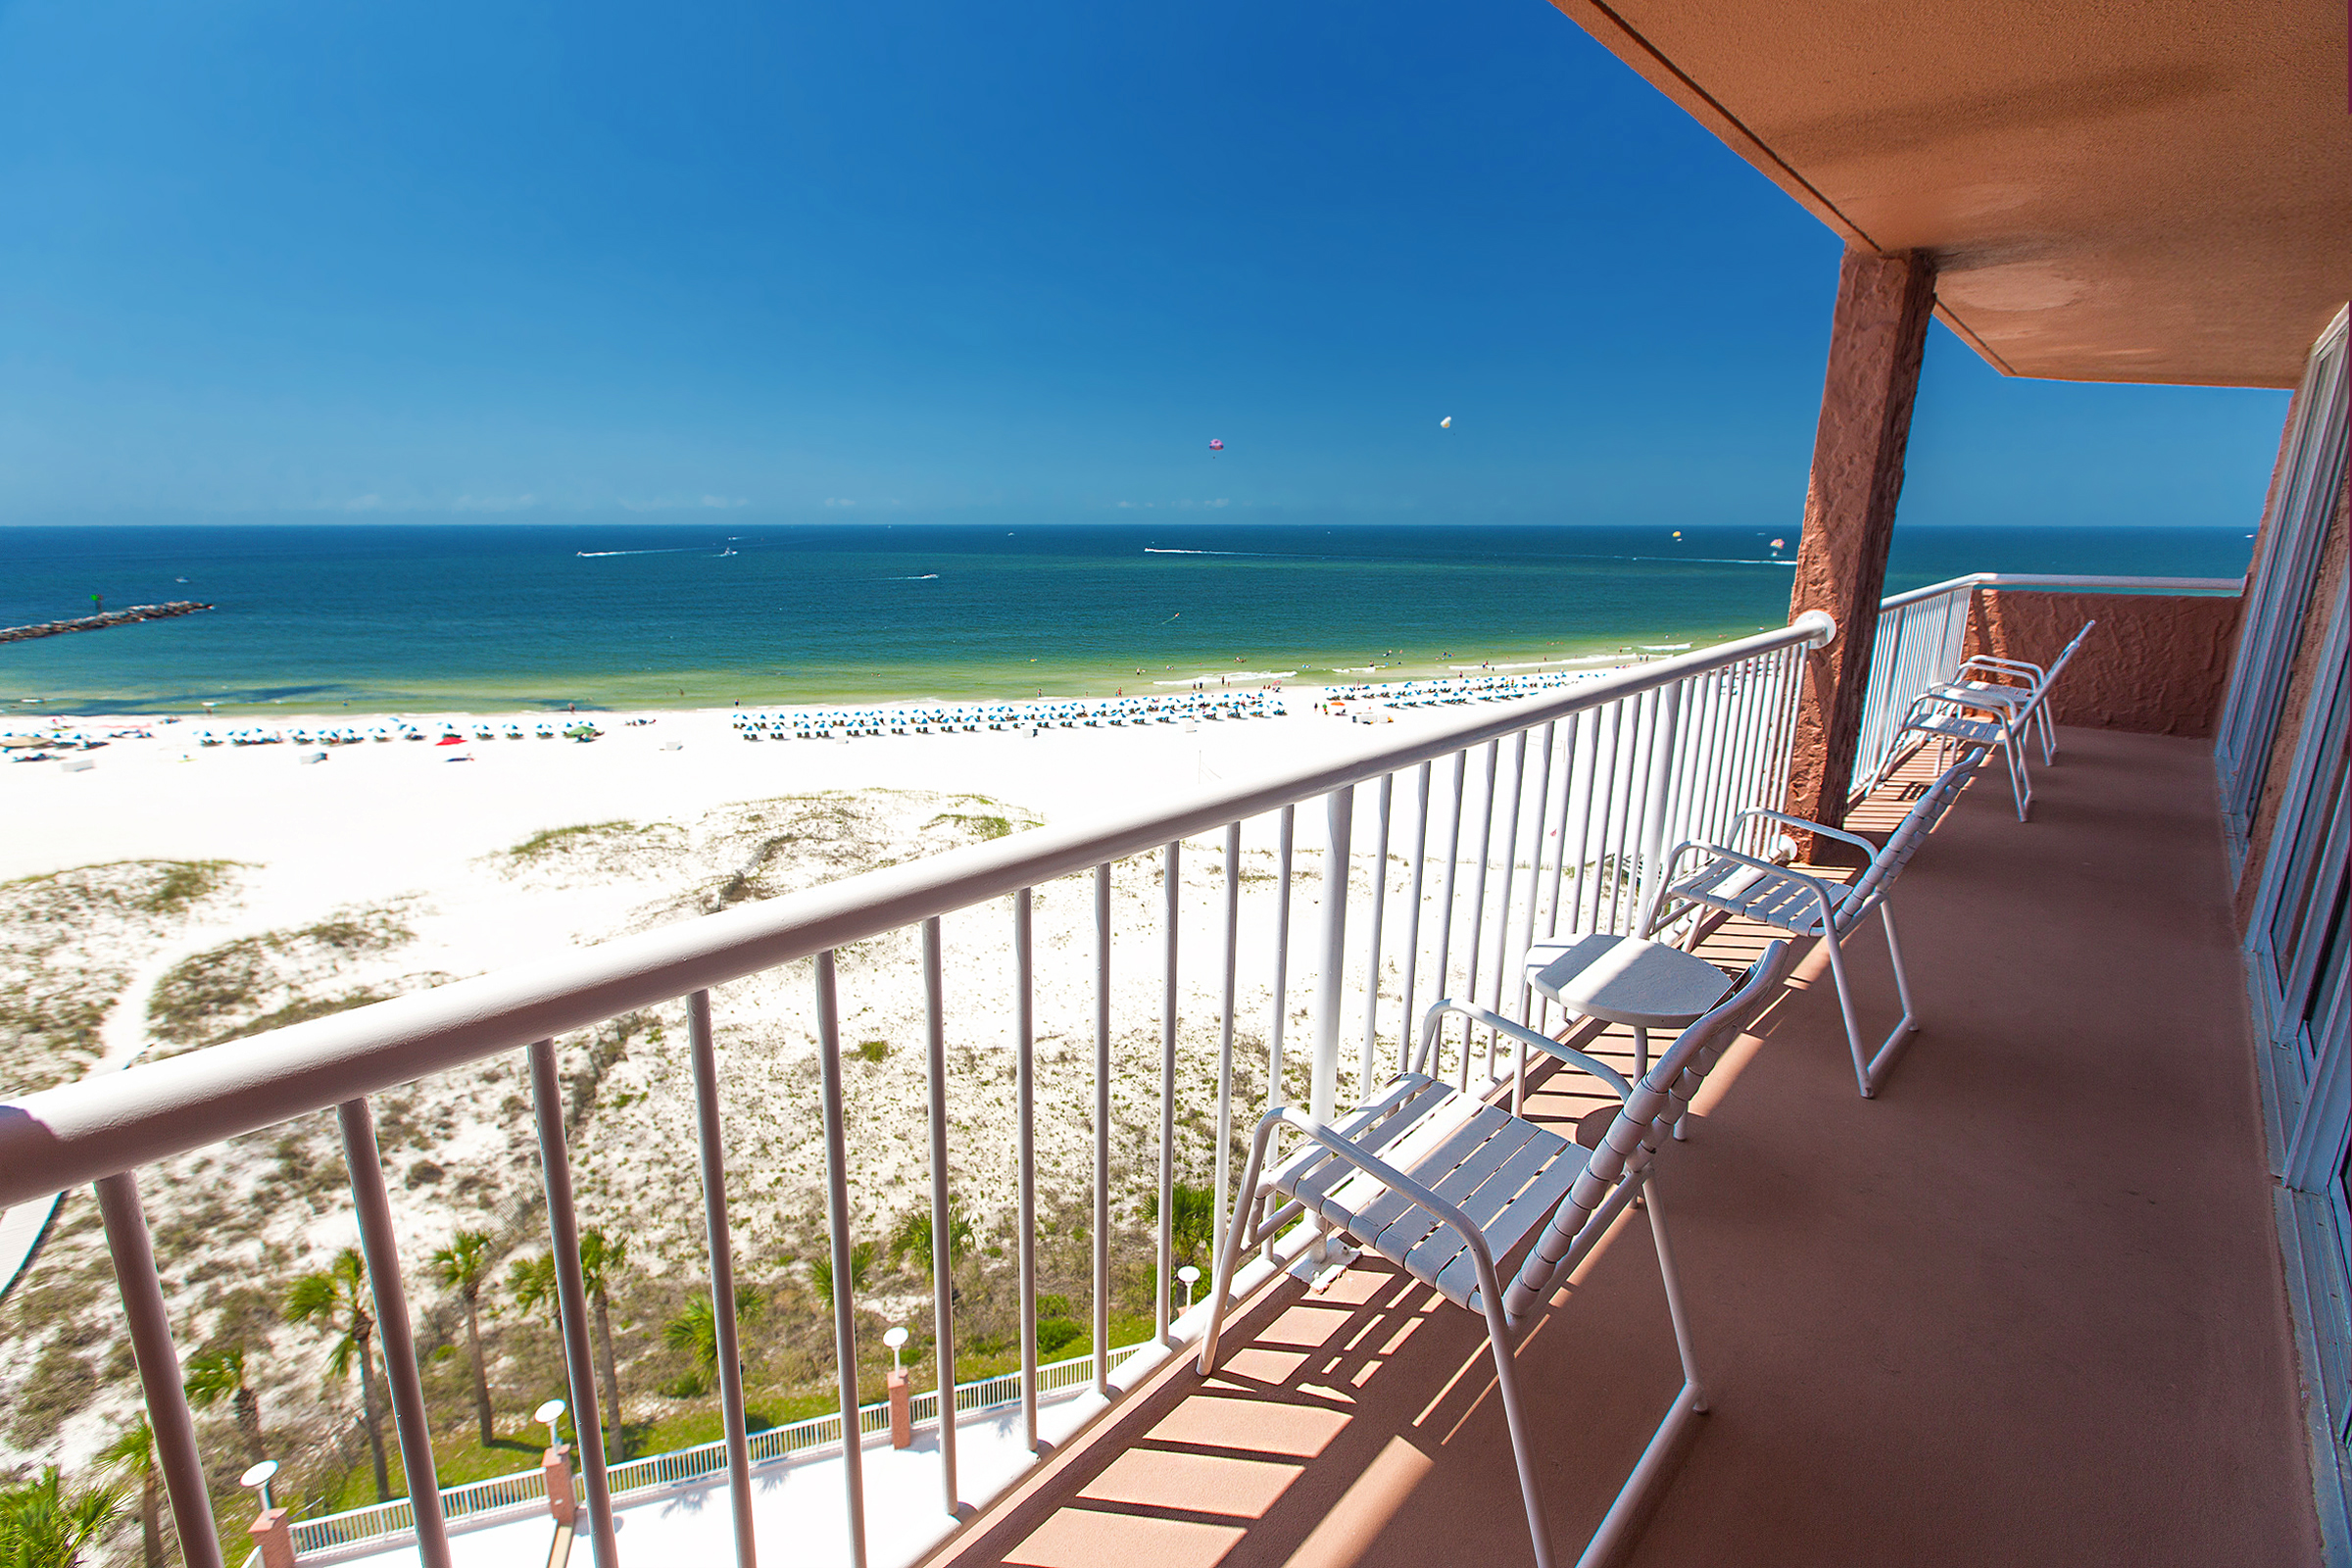 Perdido Beach Executive Suite featuring a great balcony view